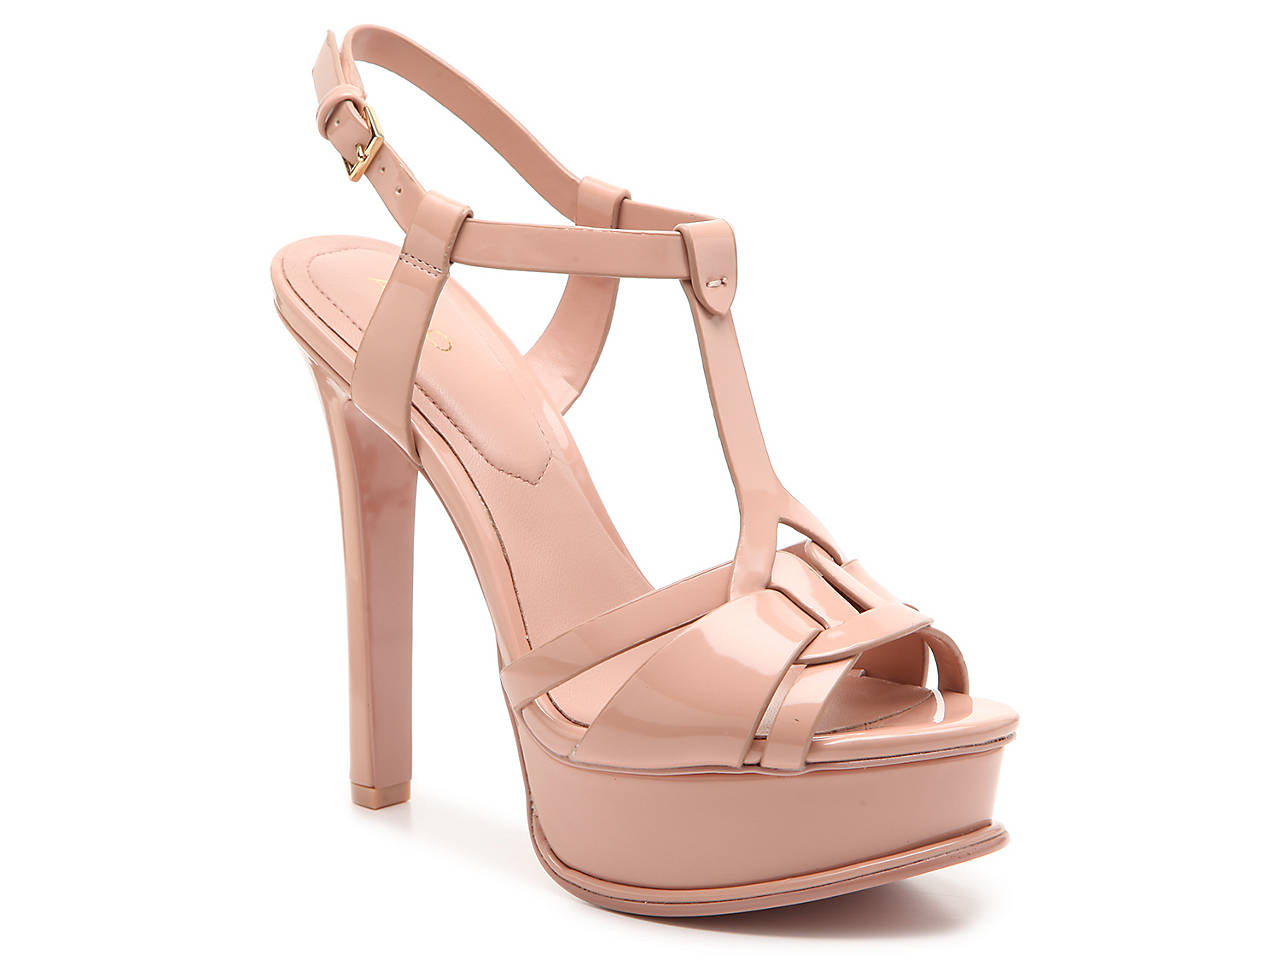 f9d90444e7b Aldo Chelly Platform Sandal Women s Shoes